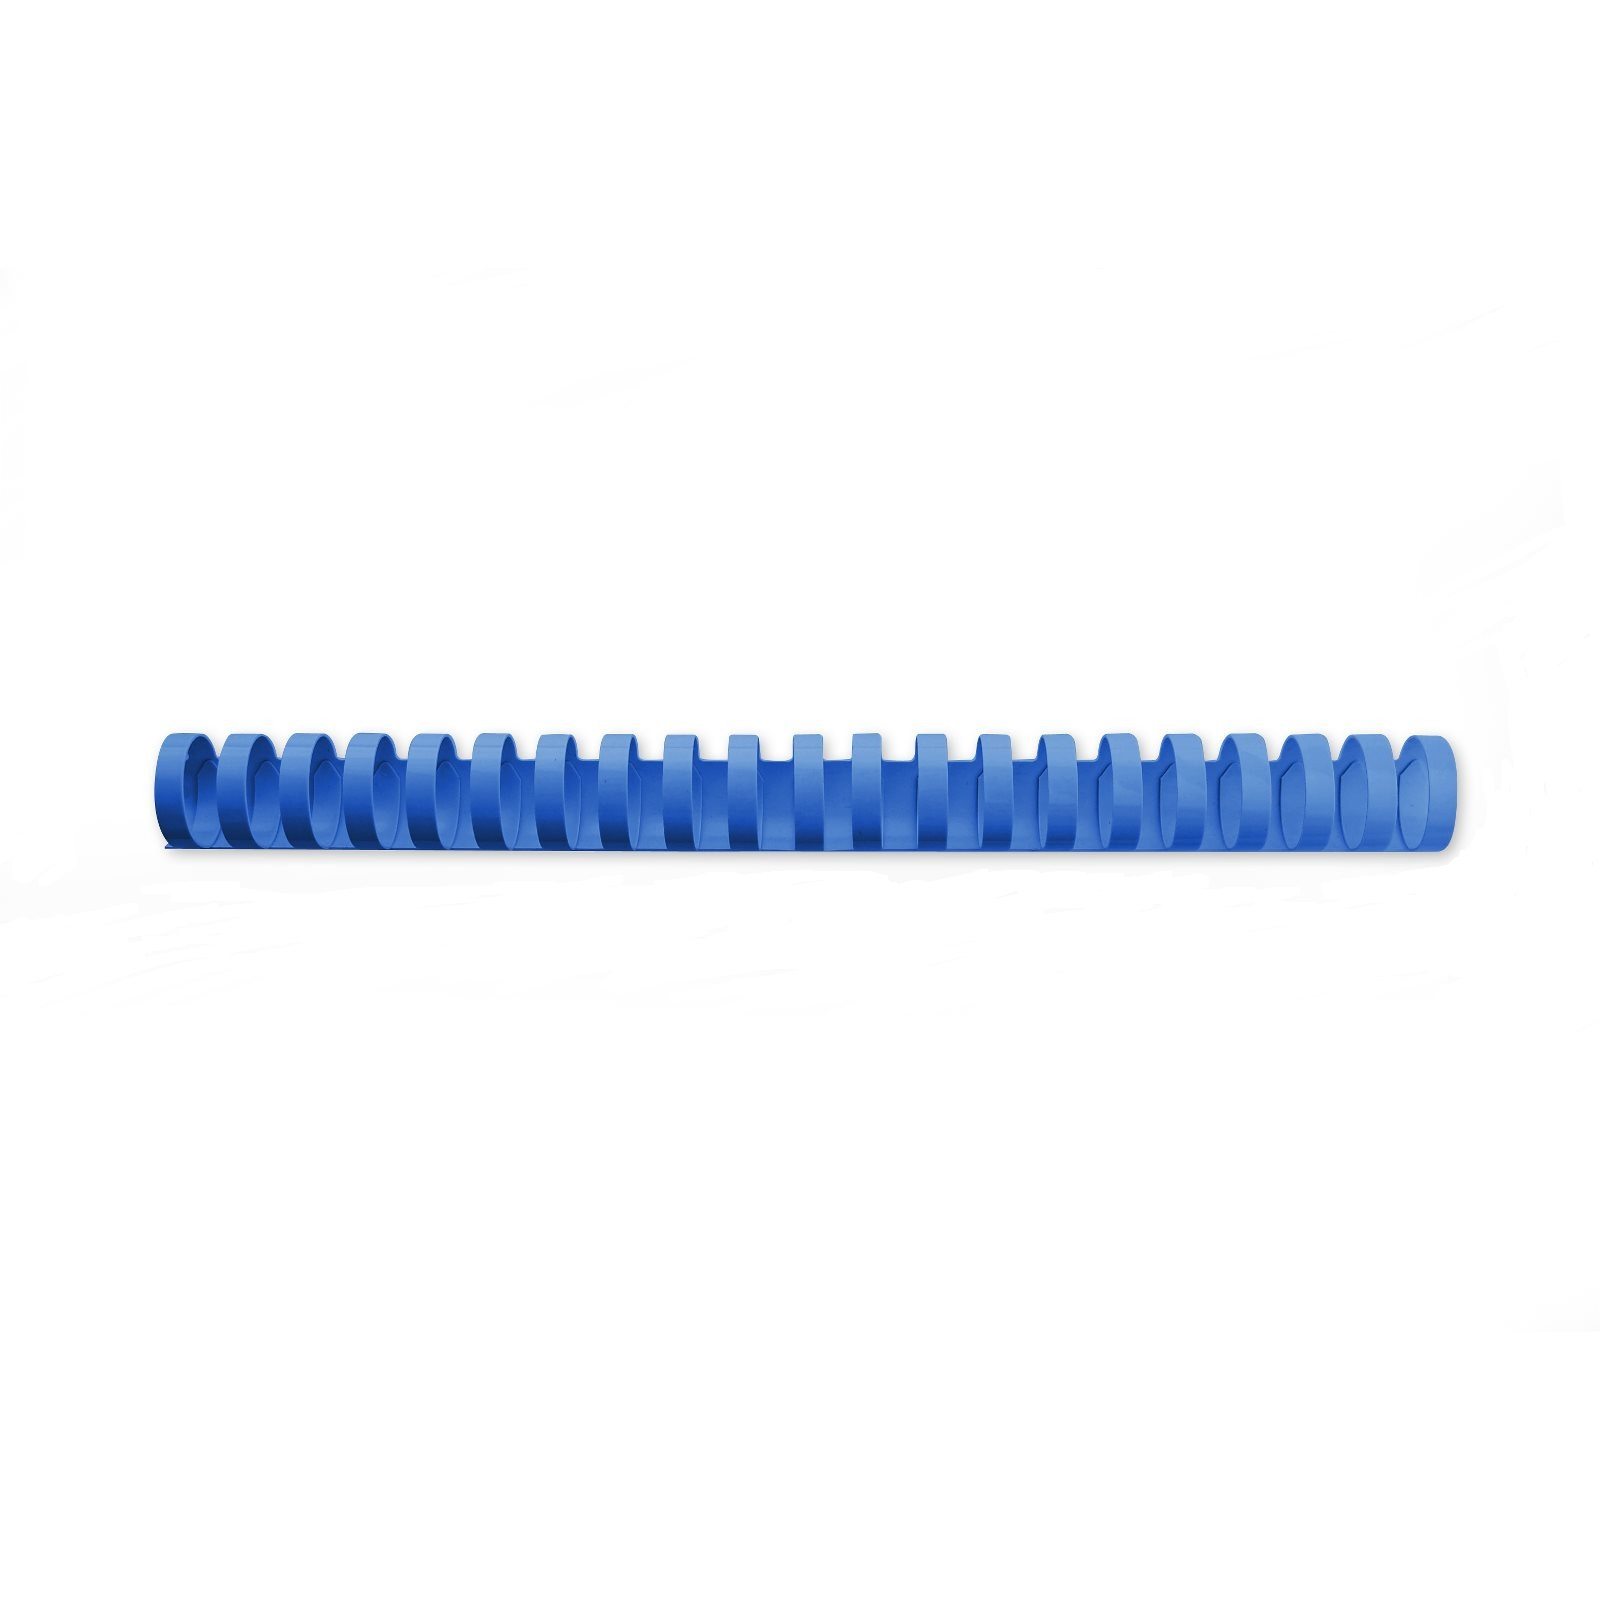 GBC Binding Combs 21 Ring A4 12mm Blue 4028237 (PK100)